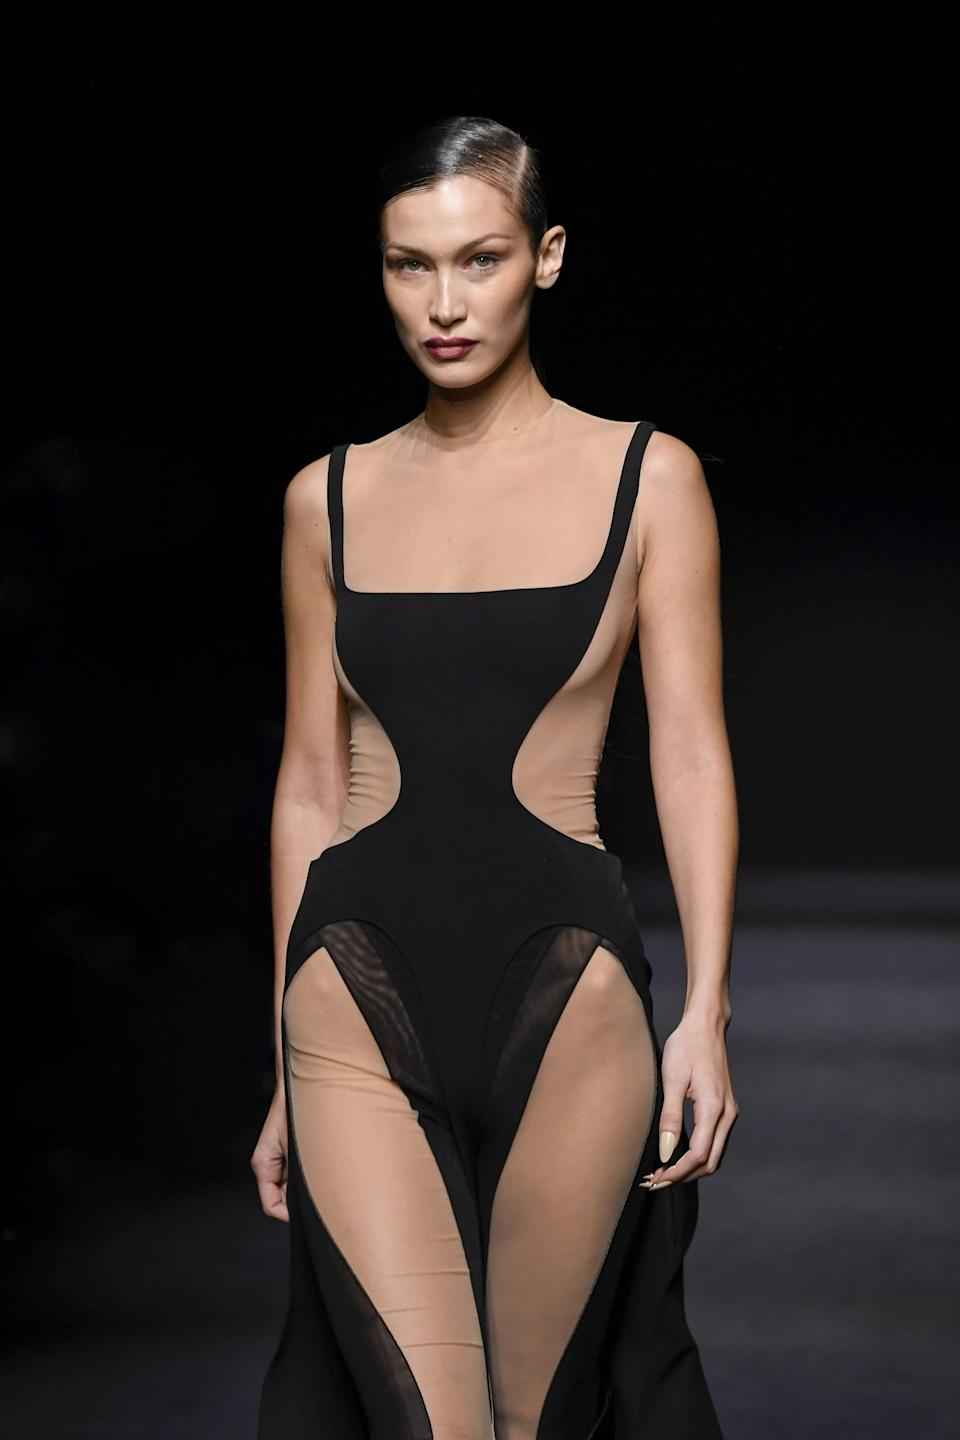 <p><em>*Please note all times listed are Paris time.*</em></p> <p><strong>Wednesday, Sept. 30</strong></p> <p>Physical show 10:30 a.m. - Kenzo<br> Digital show 11:30 a.m. - Mugler<br> Digital show 3 p.m. - Dries Van Noten<br> Digital show 4 p.m. - Elie Saab<br> Digital show 5 p.m. - Patou<br> Physical show 6:30 p.m. - Acne Studios<br> Physical show 8 p.m. - Balmain</p> <p><strong>Thursday, Oct. 1</strong></p> <p>Physical presentation 1 p.m. to 6 p.m. - Alexis Mabille<br> Physical show 2 p.m. - Chloé<br> Digital show 3:30 p.m. - Y/Project<br> Digital show 6 p.m. - Rick Owens<br> Physical show 8 p.m. - Isabel Marant</p> <p><strong>Friday, Oct. 2</strong></p> <p>Digital show 9:30 a.m. - Emanuel Ungaro<br> Physical presentation 11 a.m. to 6 p.m. - Alexandre Vauthier<br> Digital show 11:30 a.m. - Loewe<br> Physical show 12:30 p.m. - Issey Miyake<br> Digital show 2:30 p.m. - Nina Ricci<br> Digital show 4 p.m. - Olivier Theyskens<br> Digital show 5 p.m. - Andrew GN<br> Physical show 7 p.m. - Yohji Yamamoto</p>